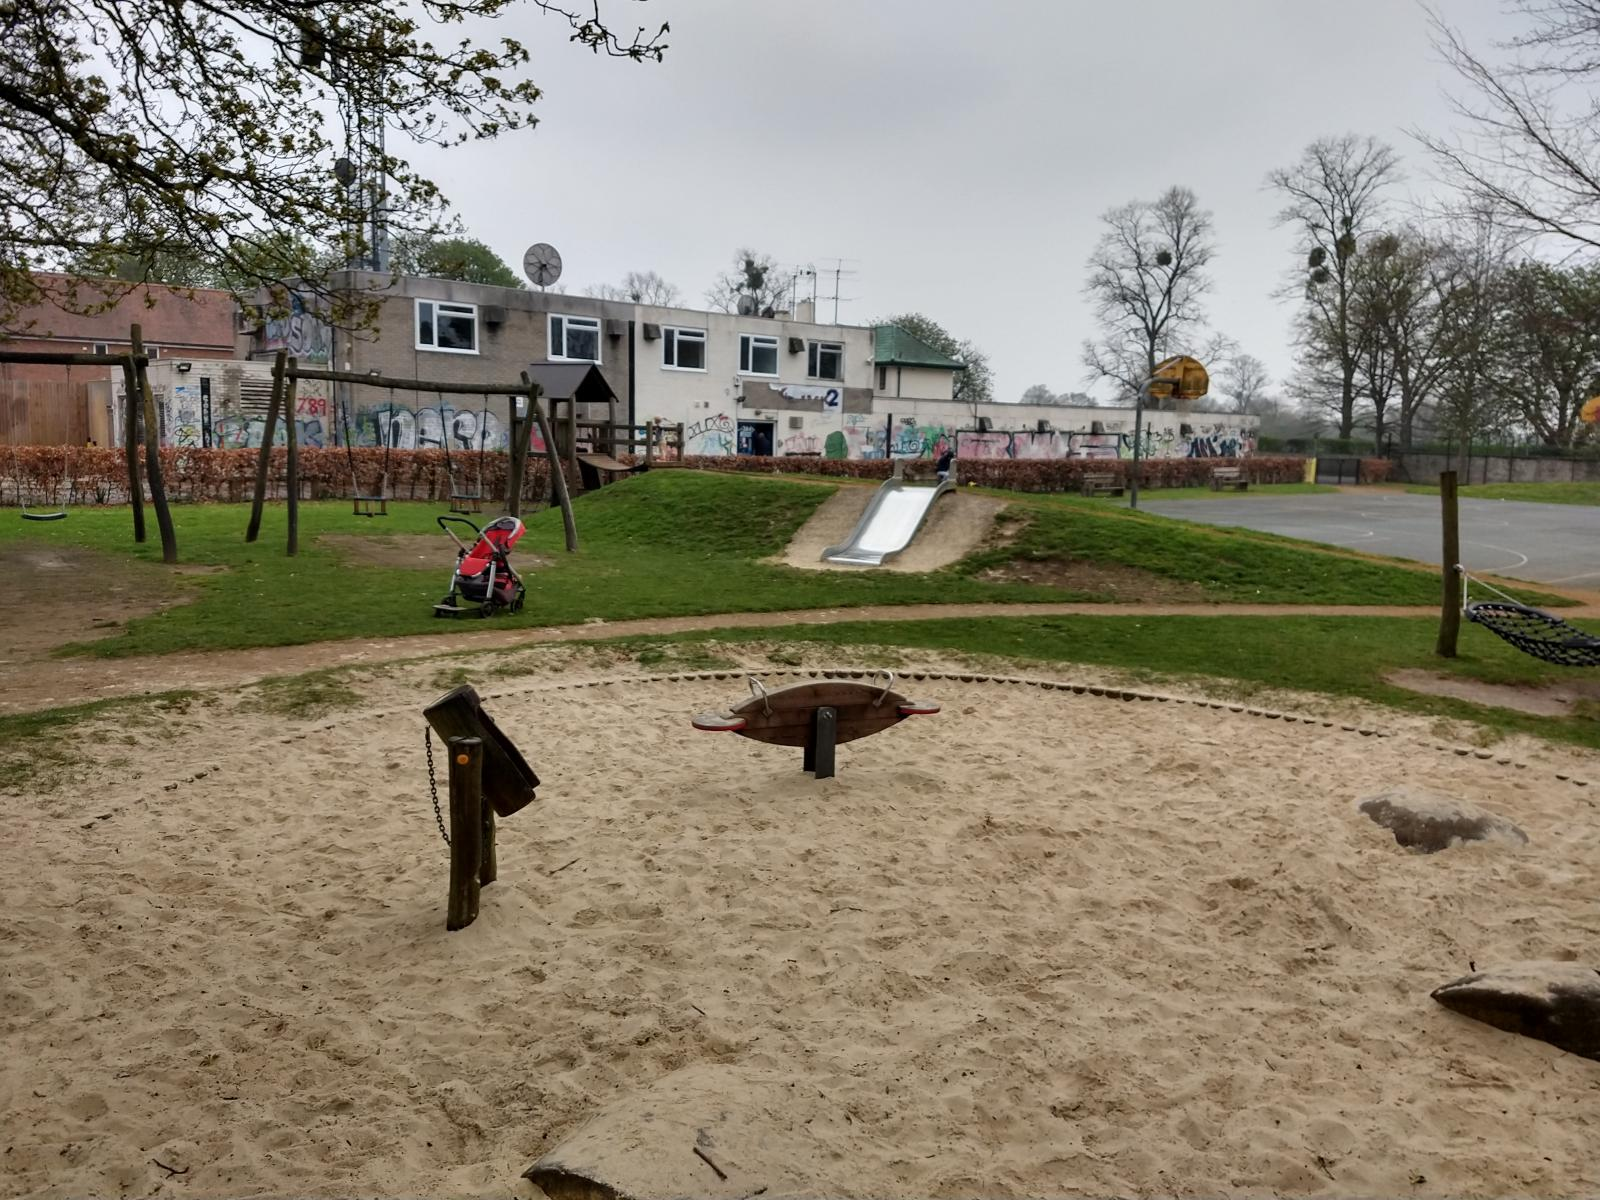 Alexandra Courts Children's Playground